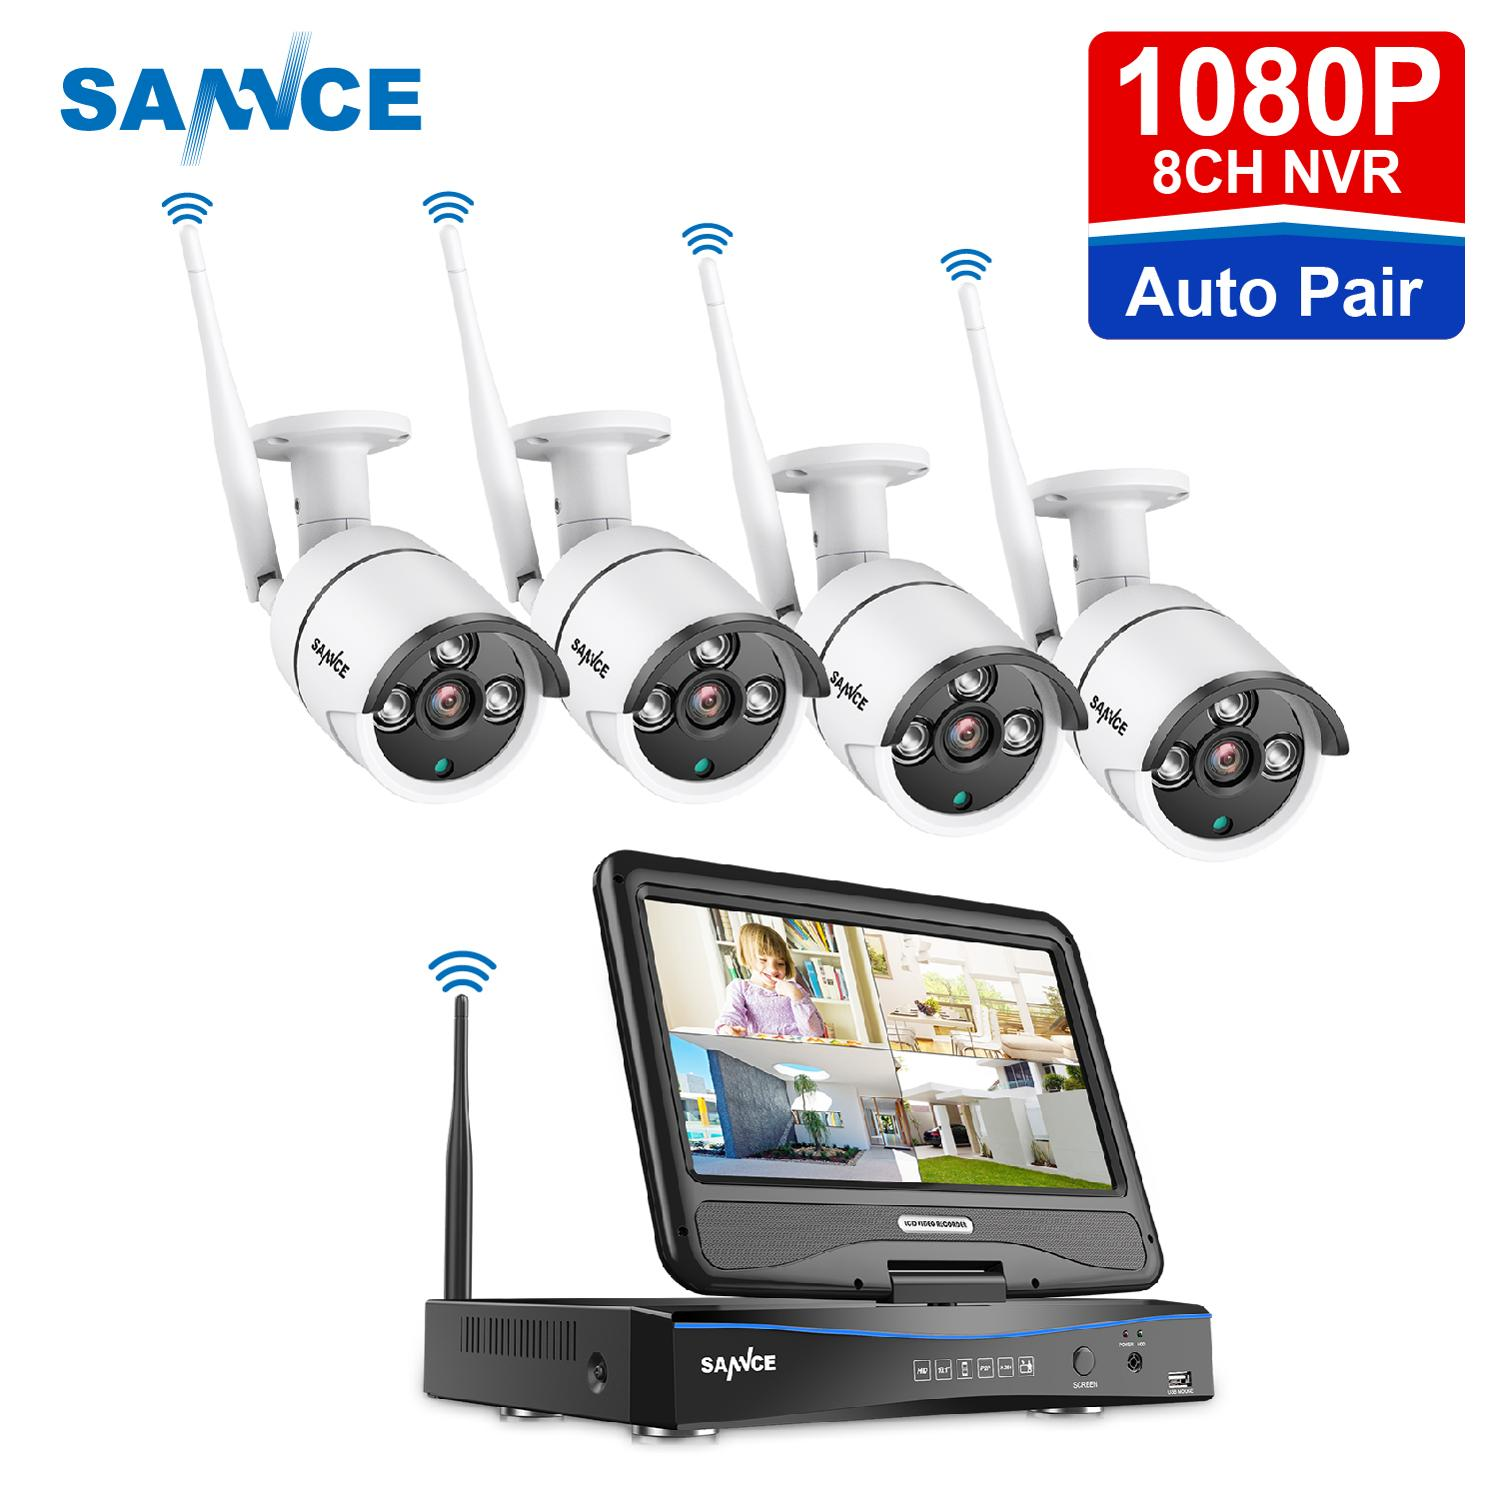 SANNCE 8CH 1080P WIFI Video Security System With 10.1inch LCD Screen 2MP H.264+ NVR With 4PCS 2MP Outdoor Weatherproof IP Camera